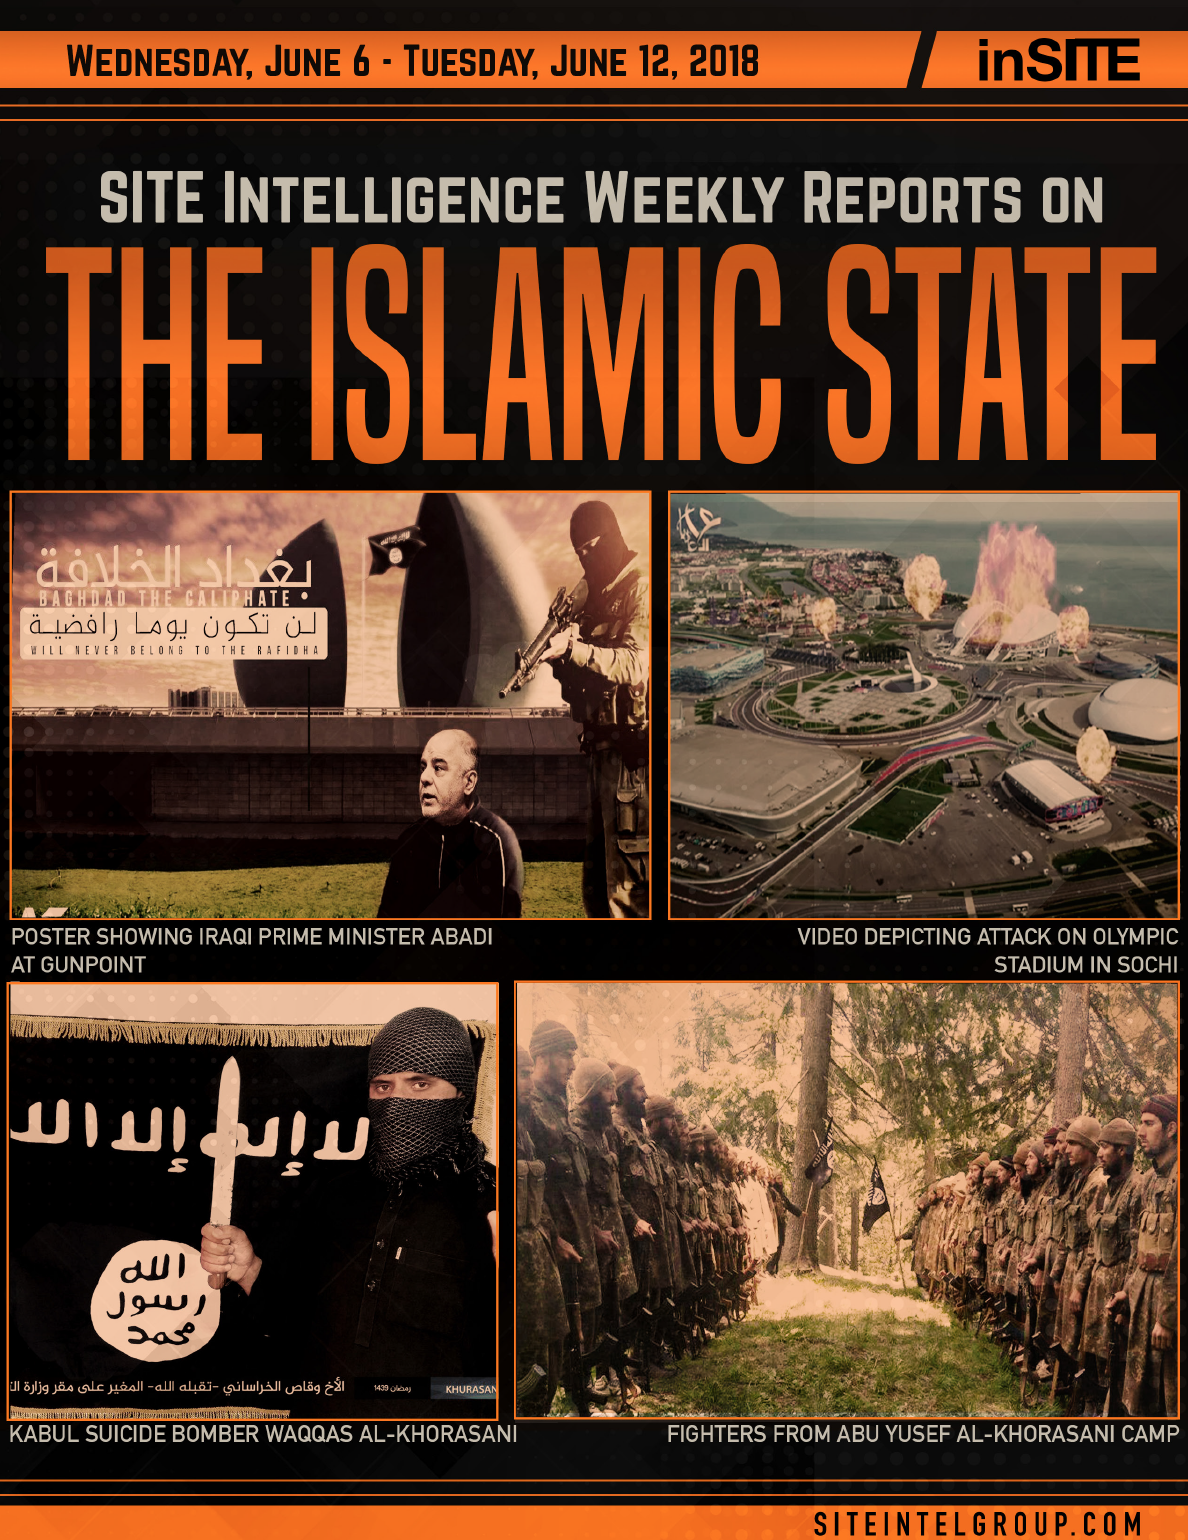 Weekly inSITE on the Islamic State for June 6-12, 2018